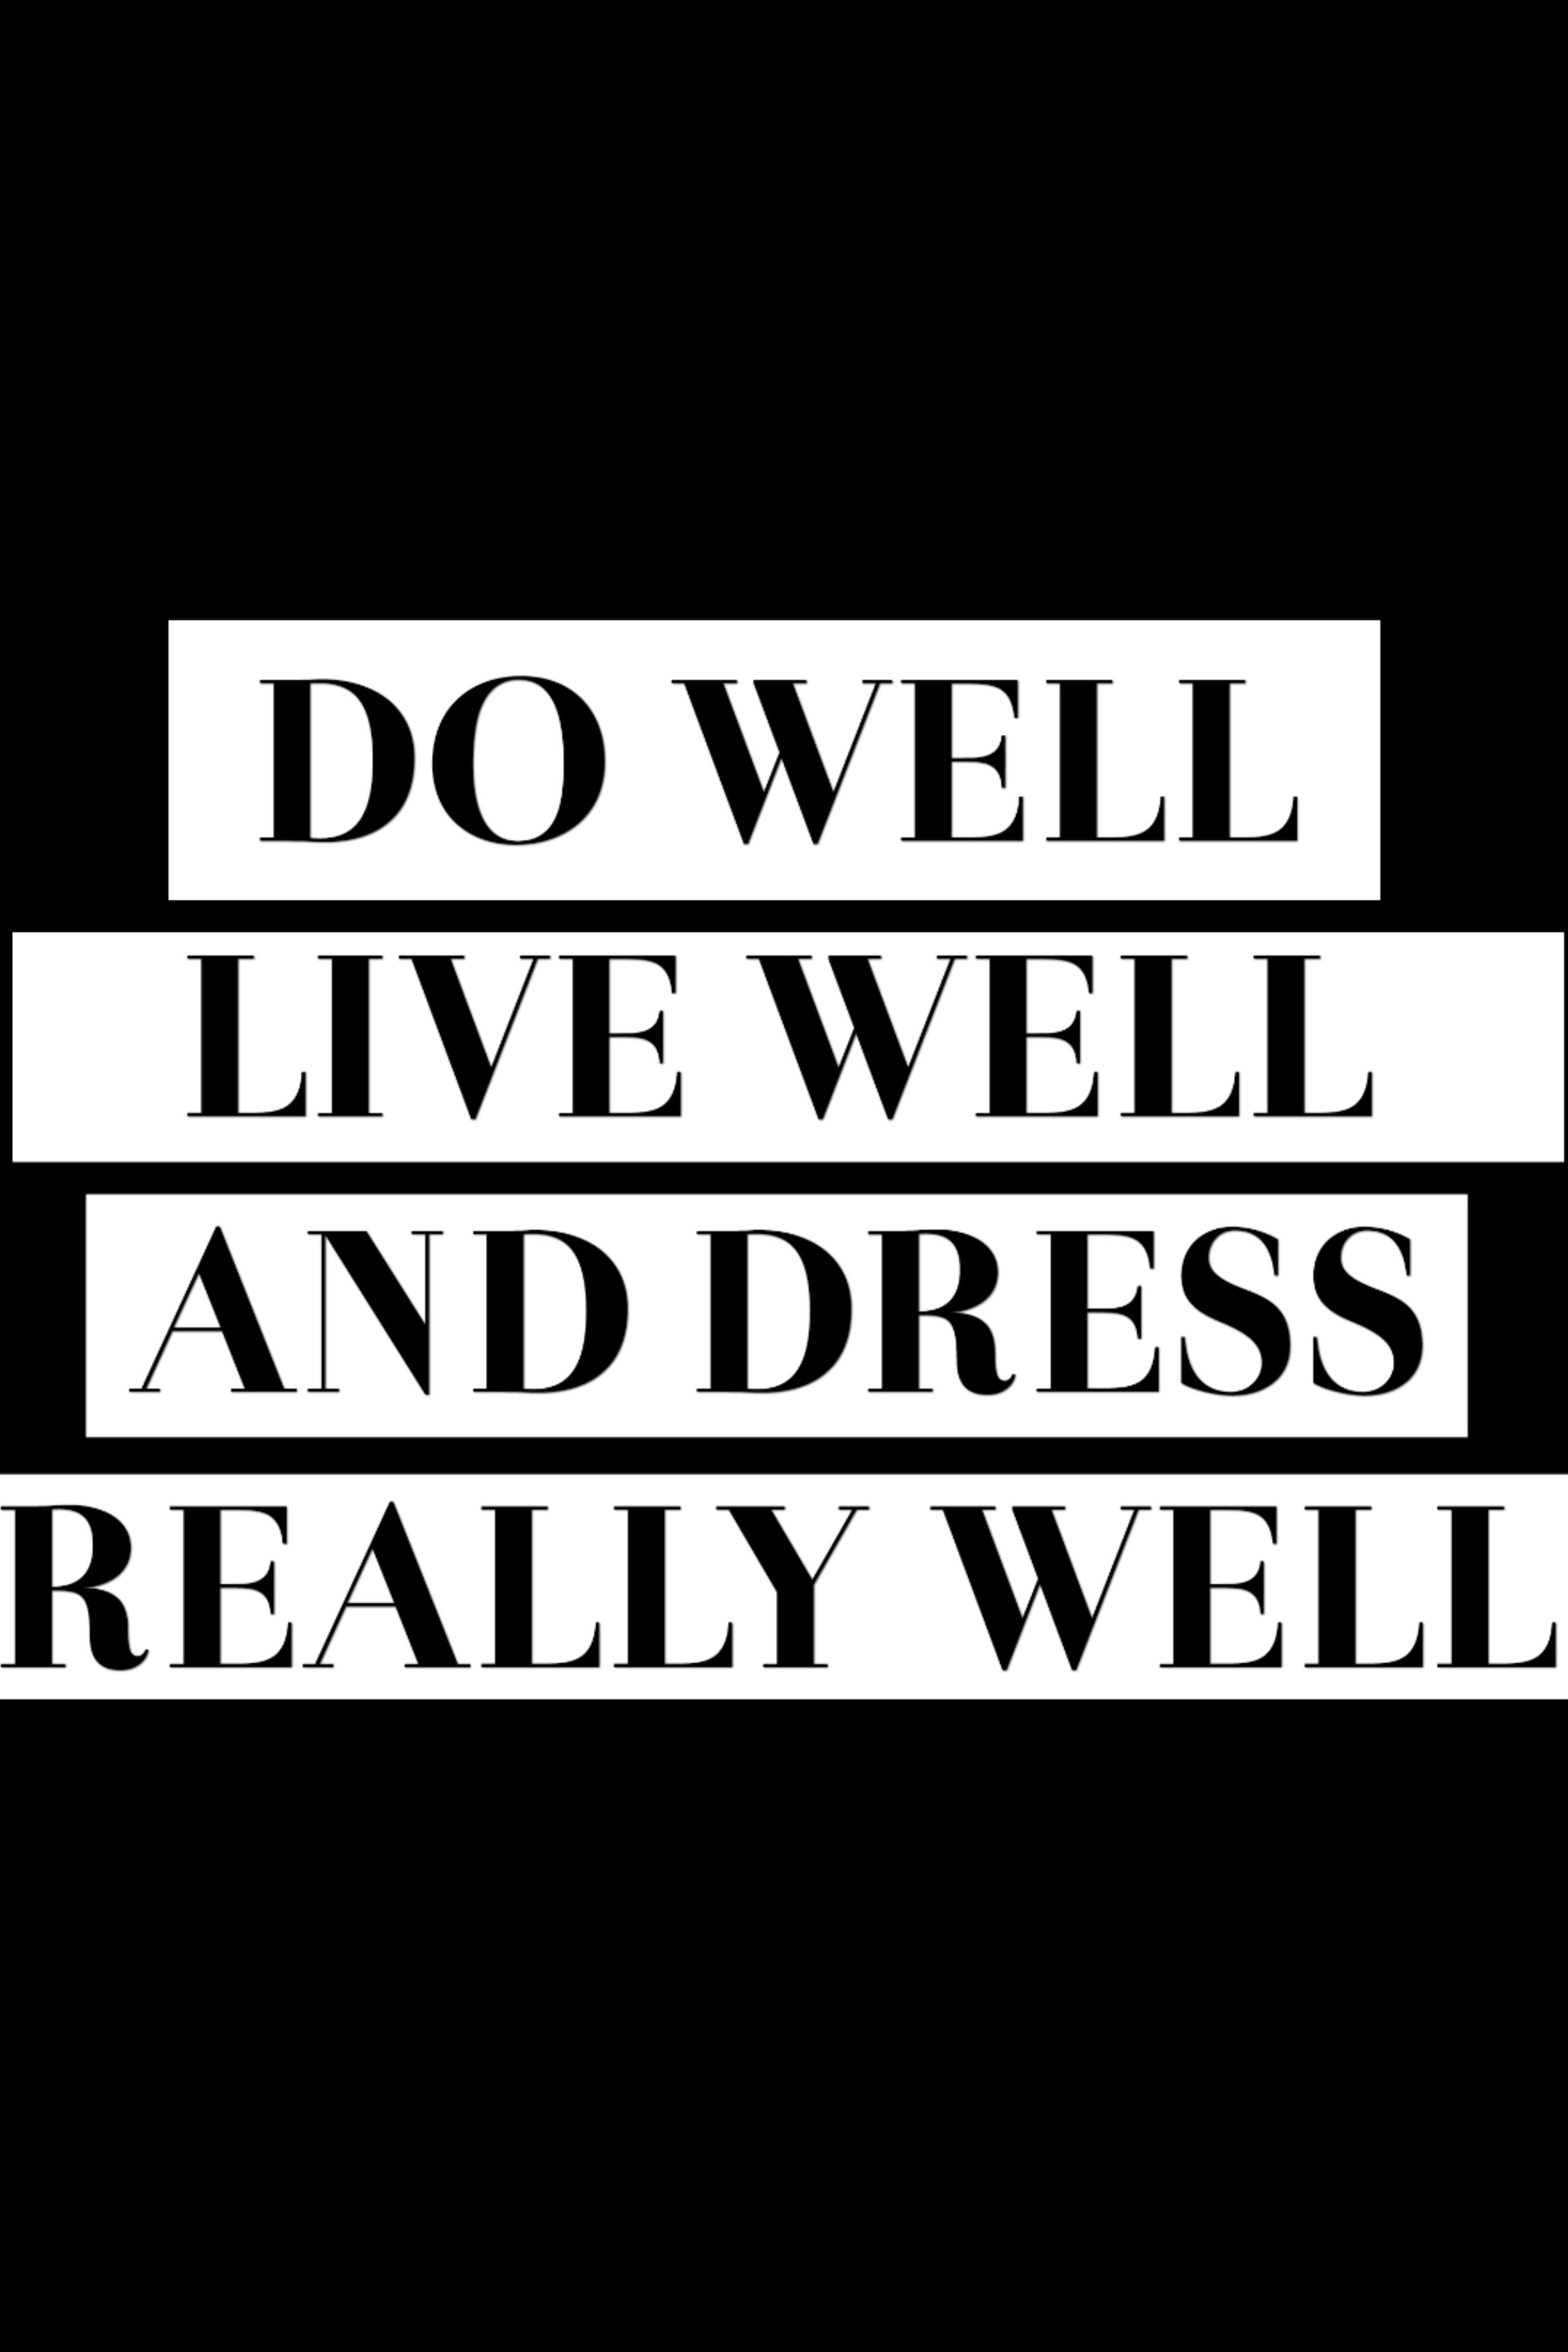 Black And White Fashion Quote Fashion Quotes Inspirational Fashion Lover Quotes Art Prints Quotes [ 3712 x 2475 Pixel ]